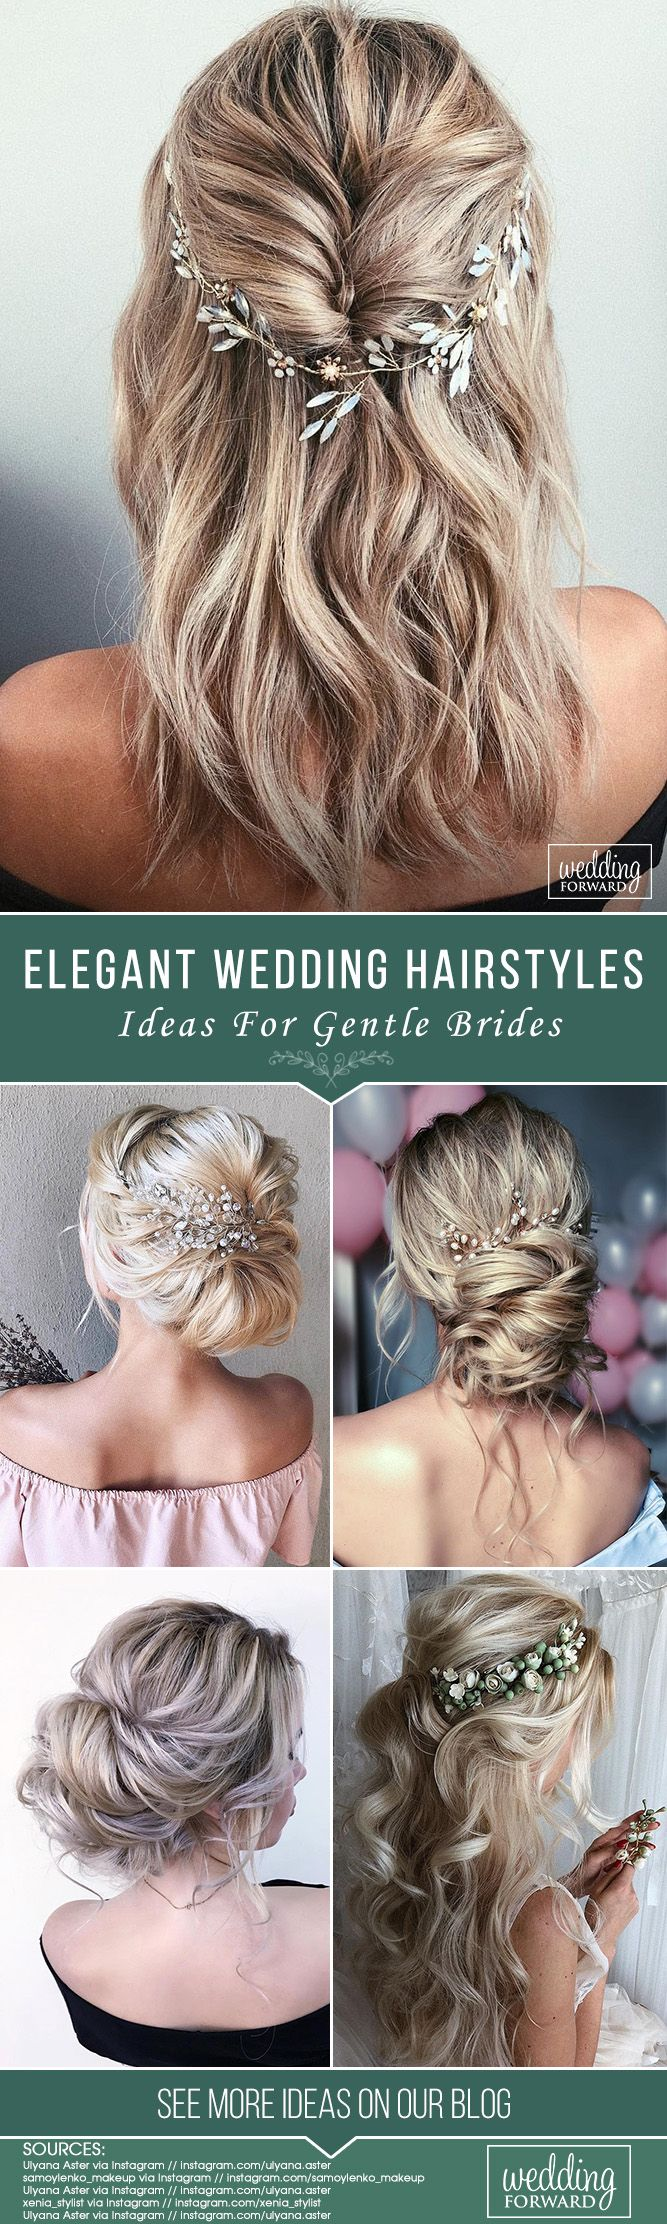 30 Elegant Wedding Hairstyles For Gentle Brides ❤ Elegant wedding hairstyles a...